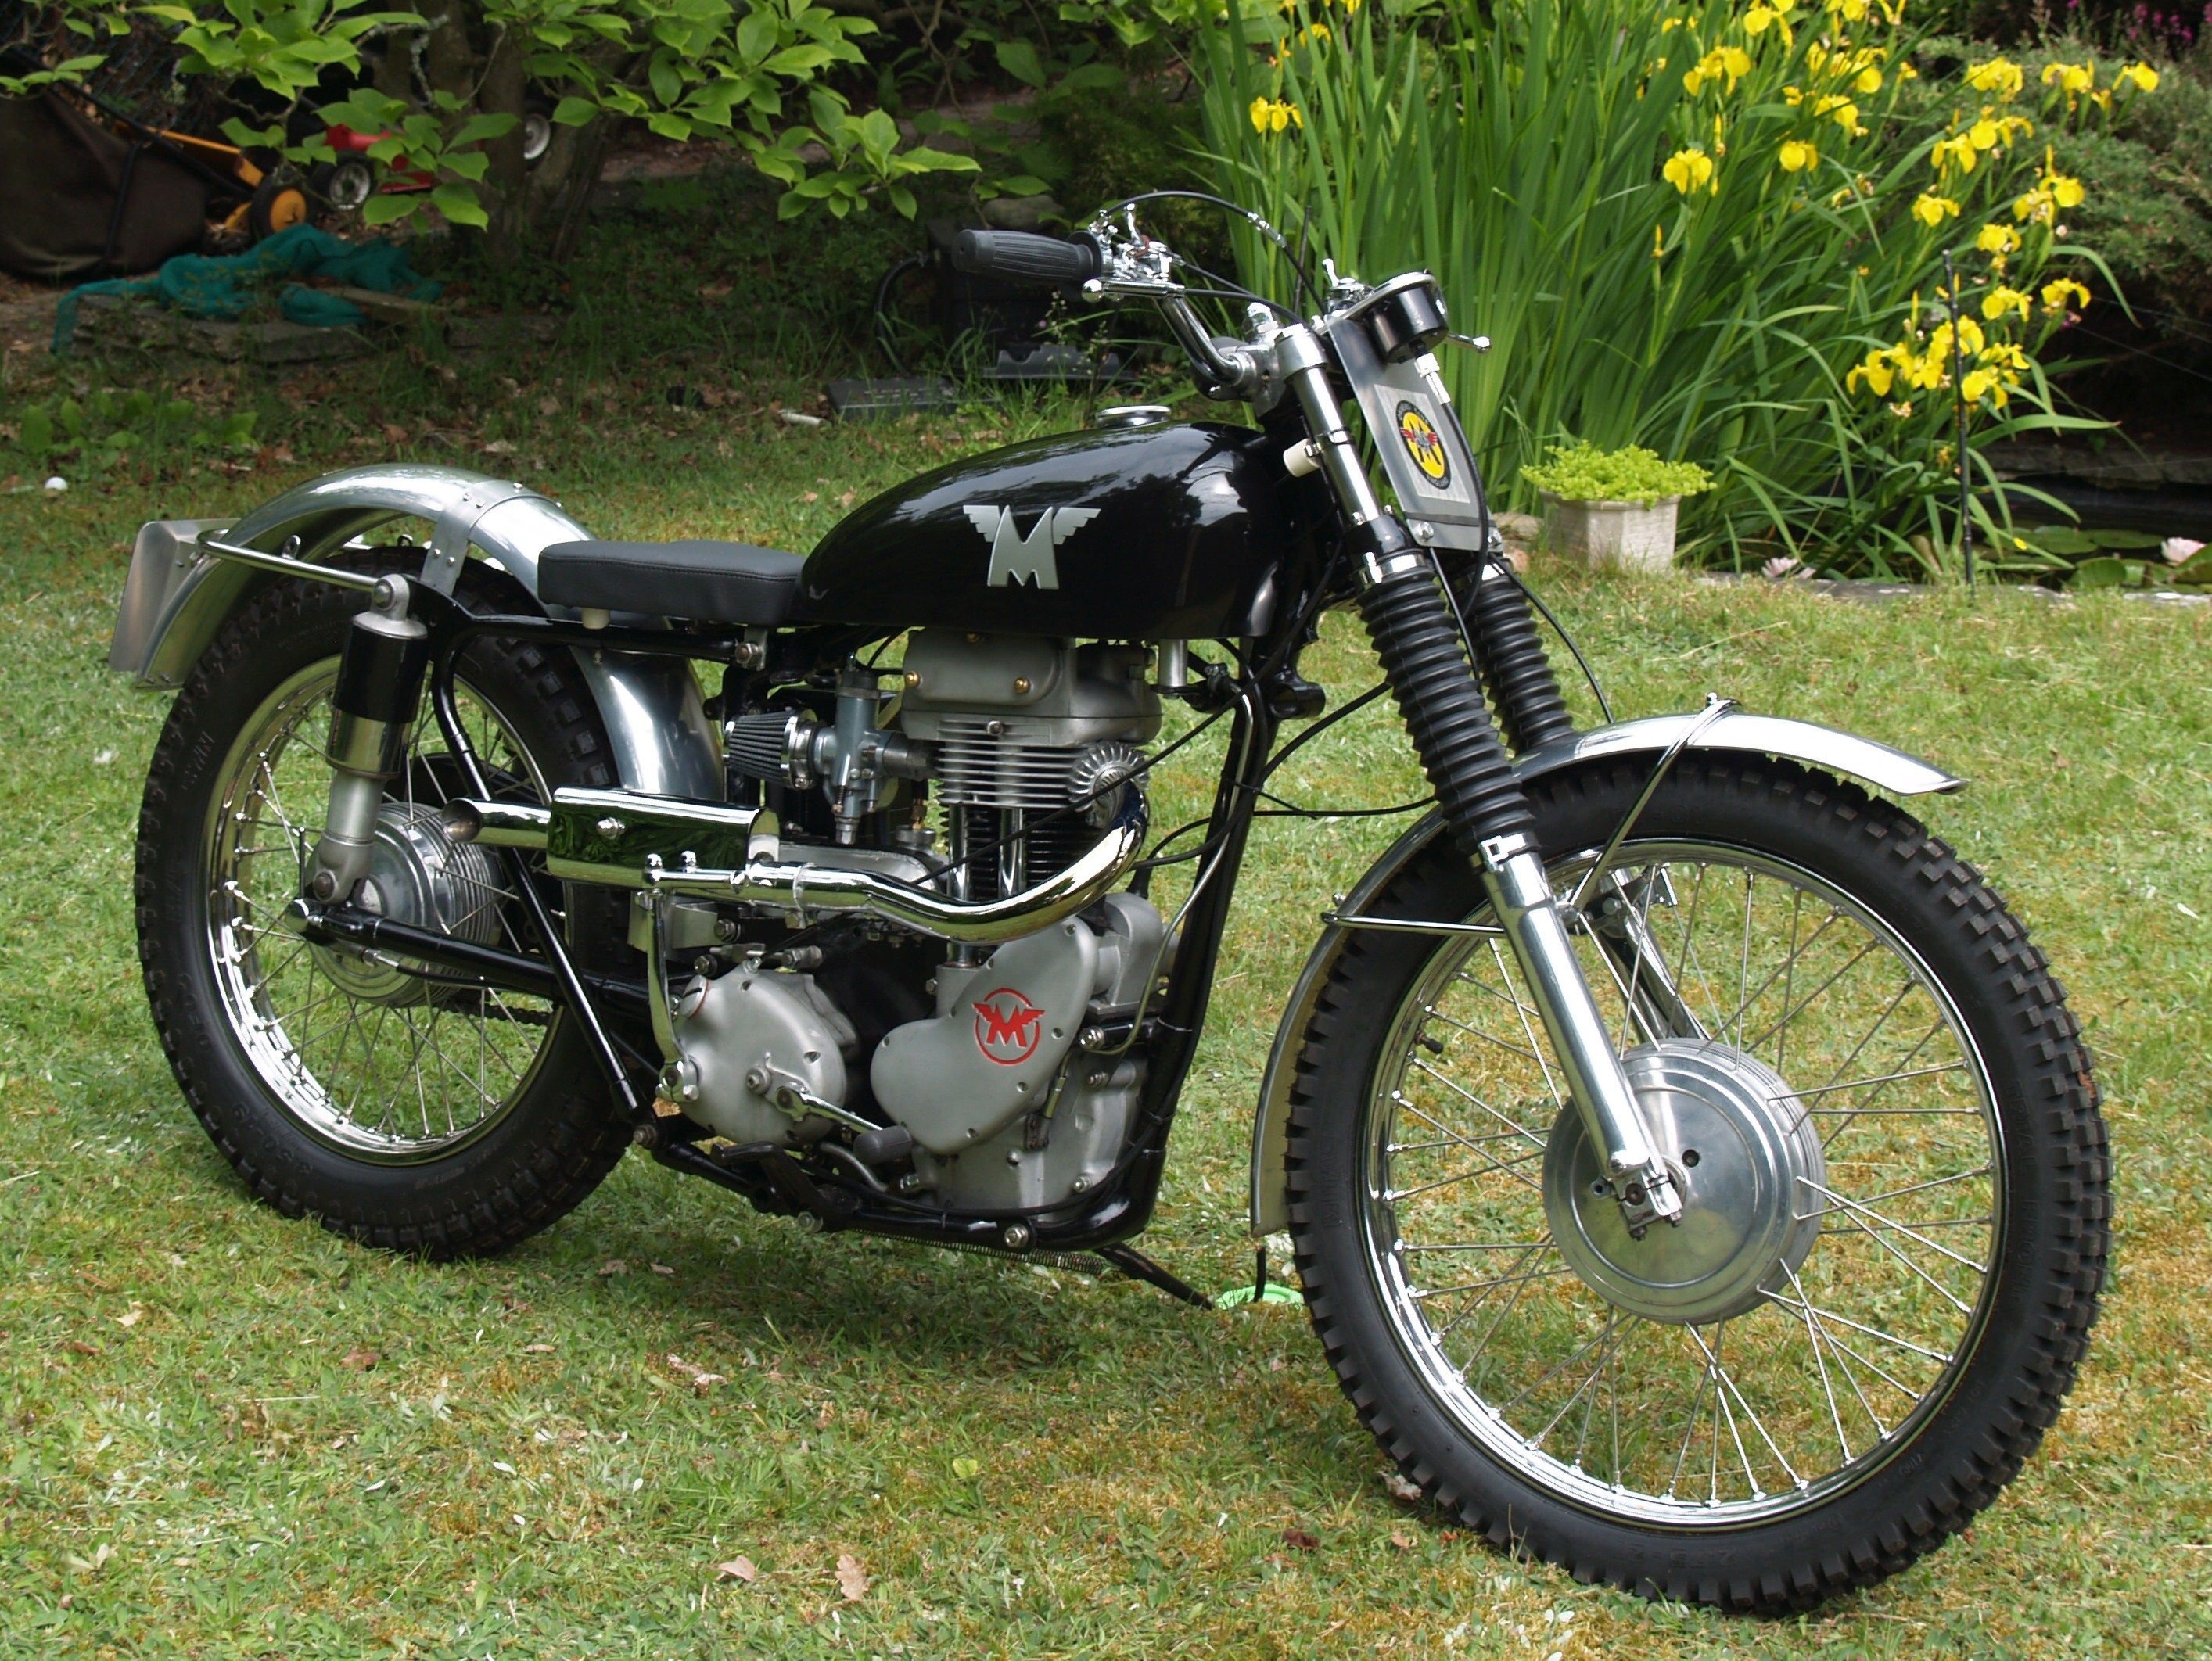 Matchless g 11 csr for sale 1958 on car and classic uk c544589 - Matchless Motorcycles Matchless Motorcycles For Sale Http Wwwvintagebikecouk Pictures